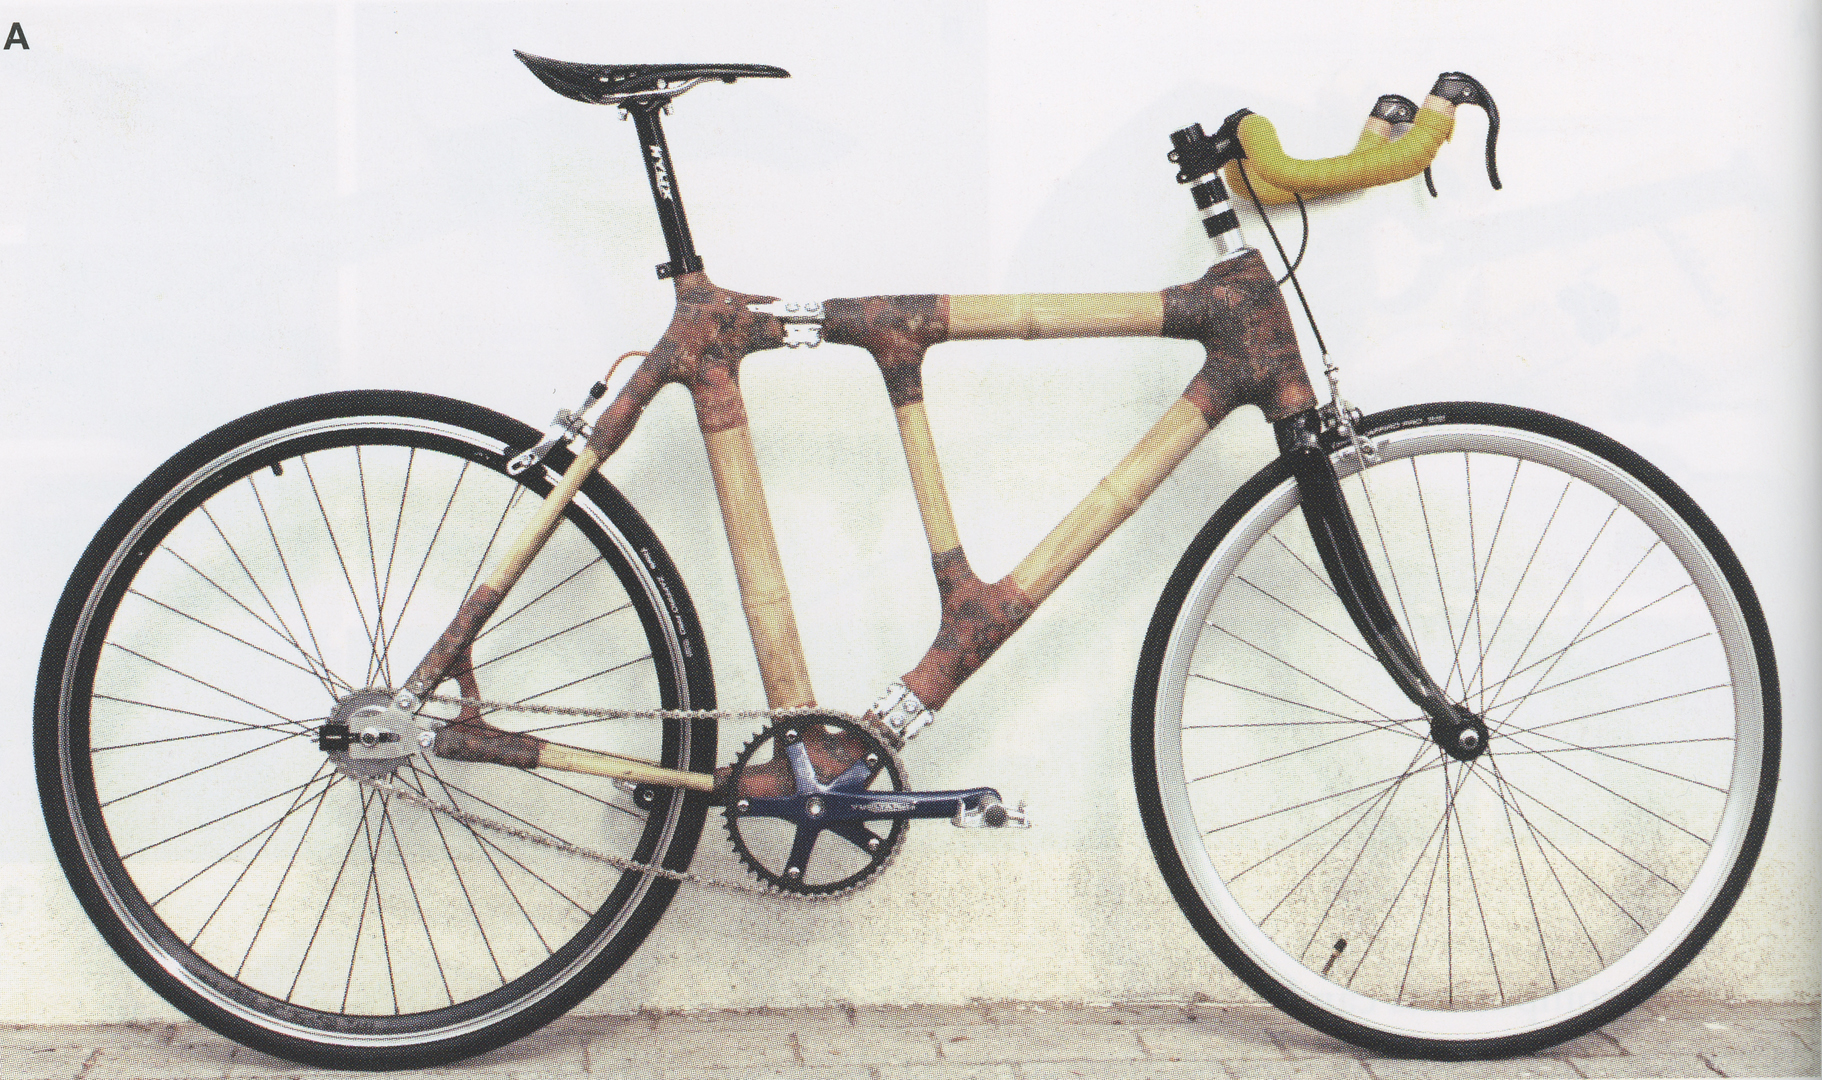 ©2015, Atar Brosh, Bicycle Frame Domestic Fabrication